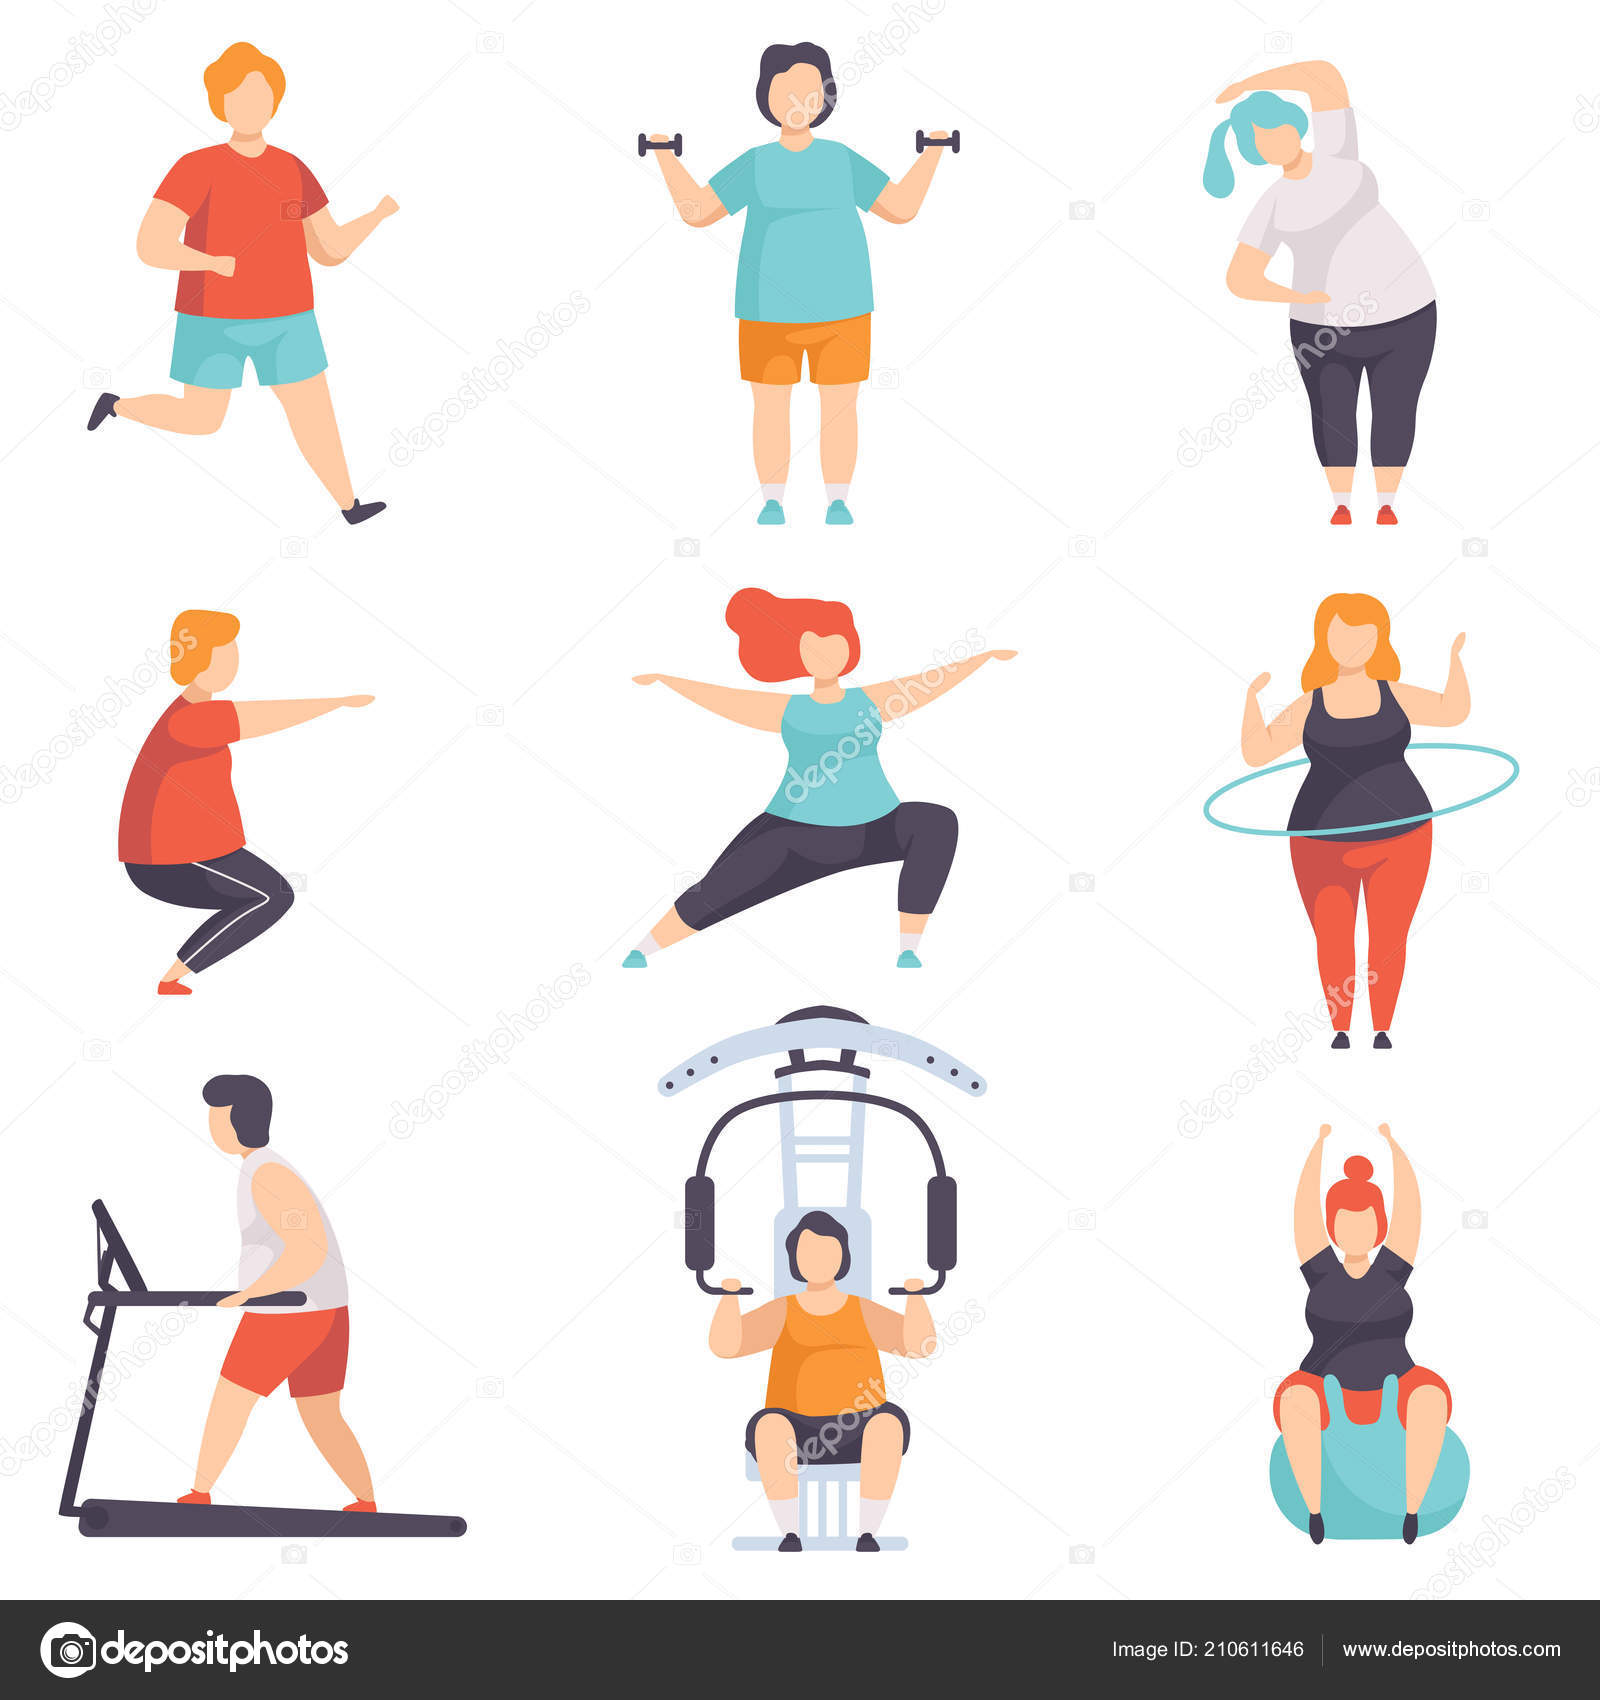 Exercise Aspects of Obesity Treatment